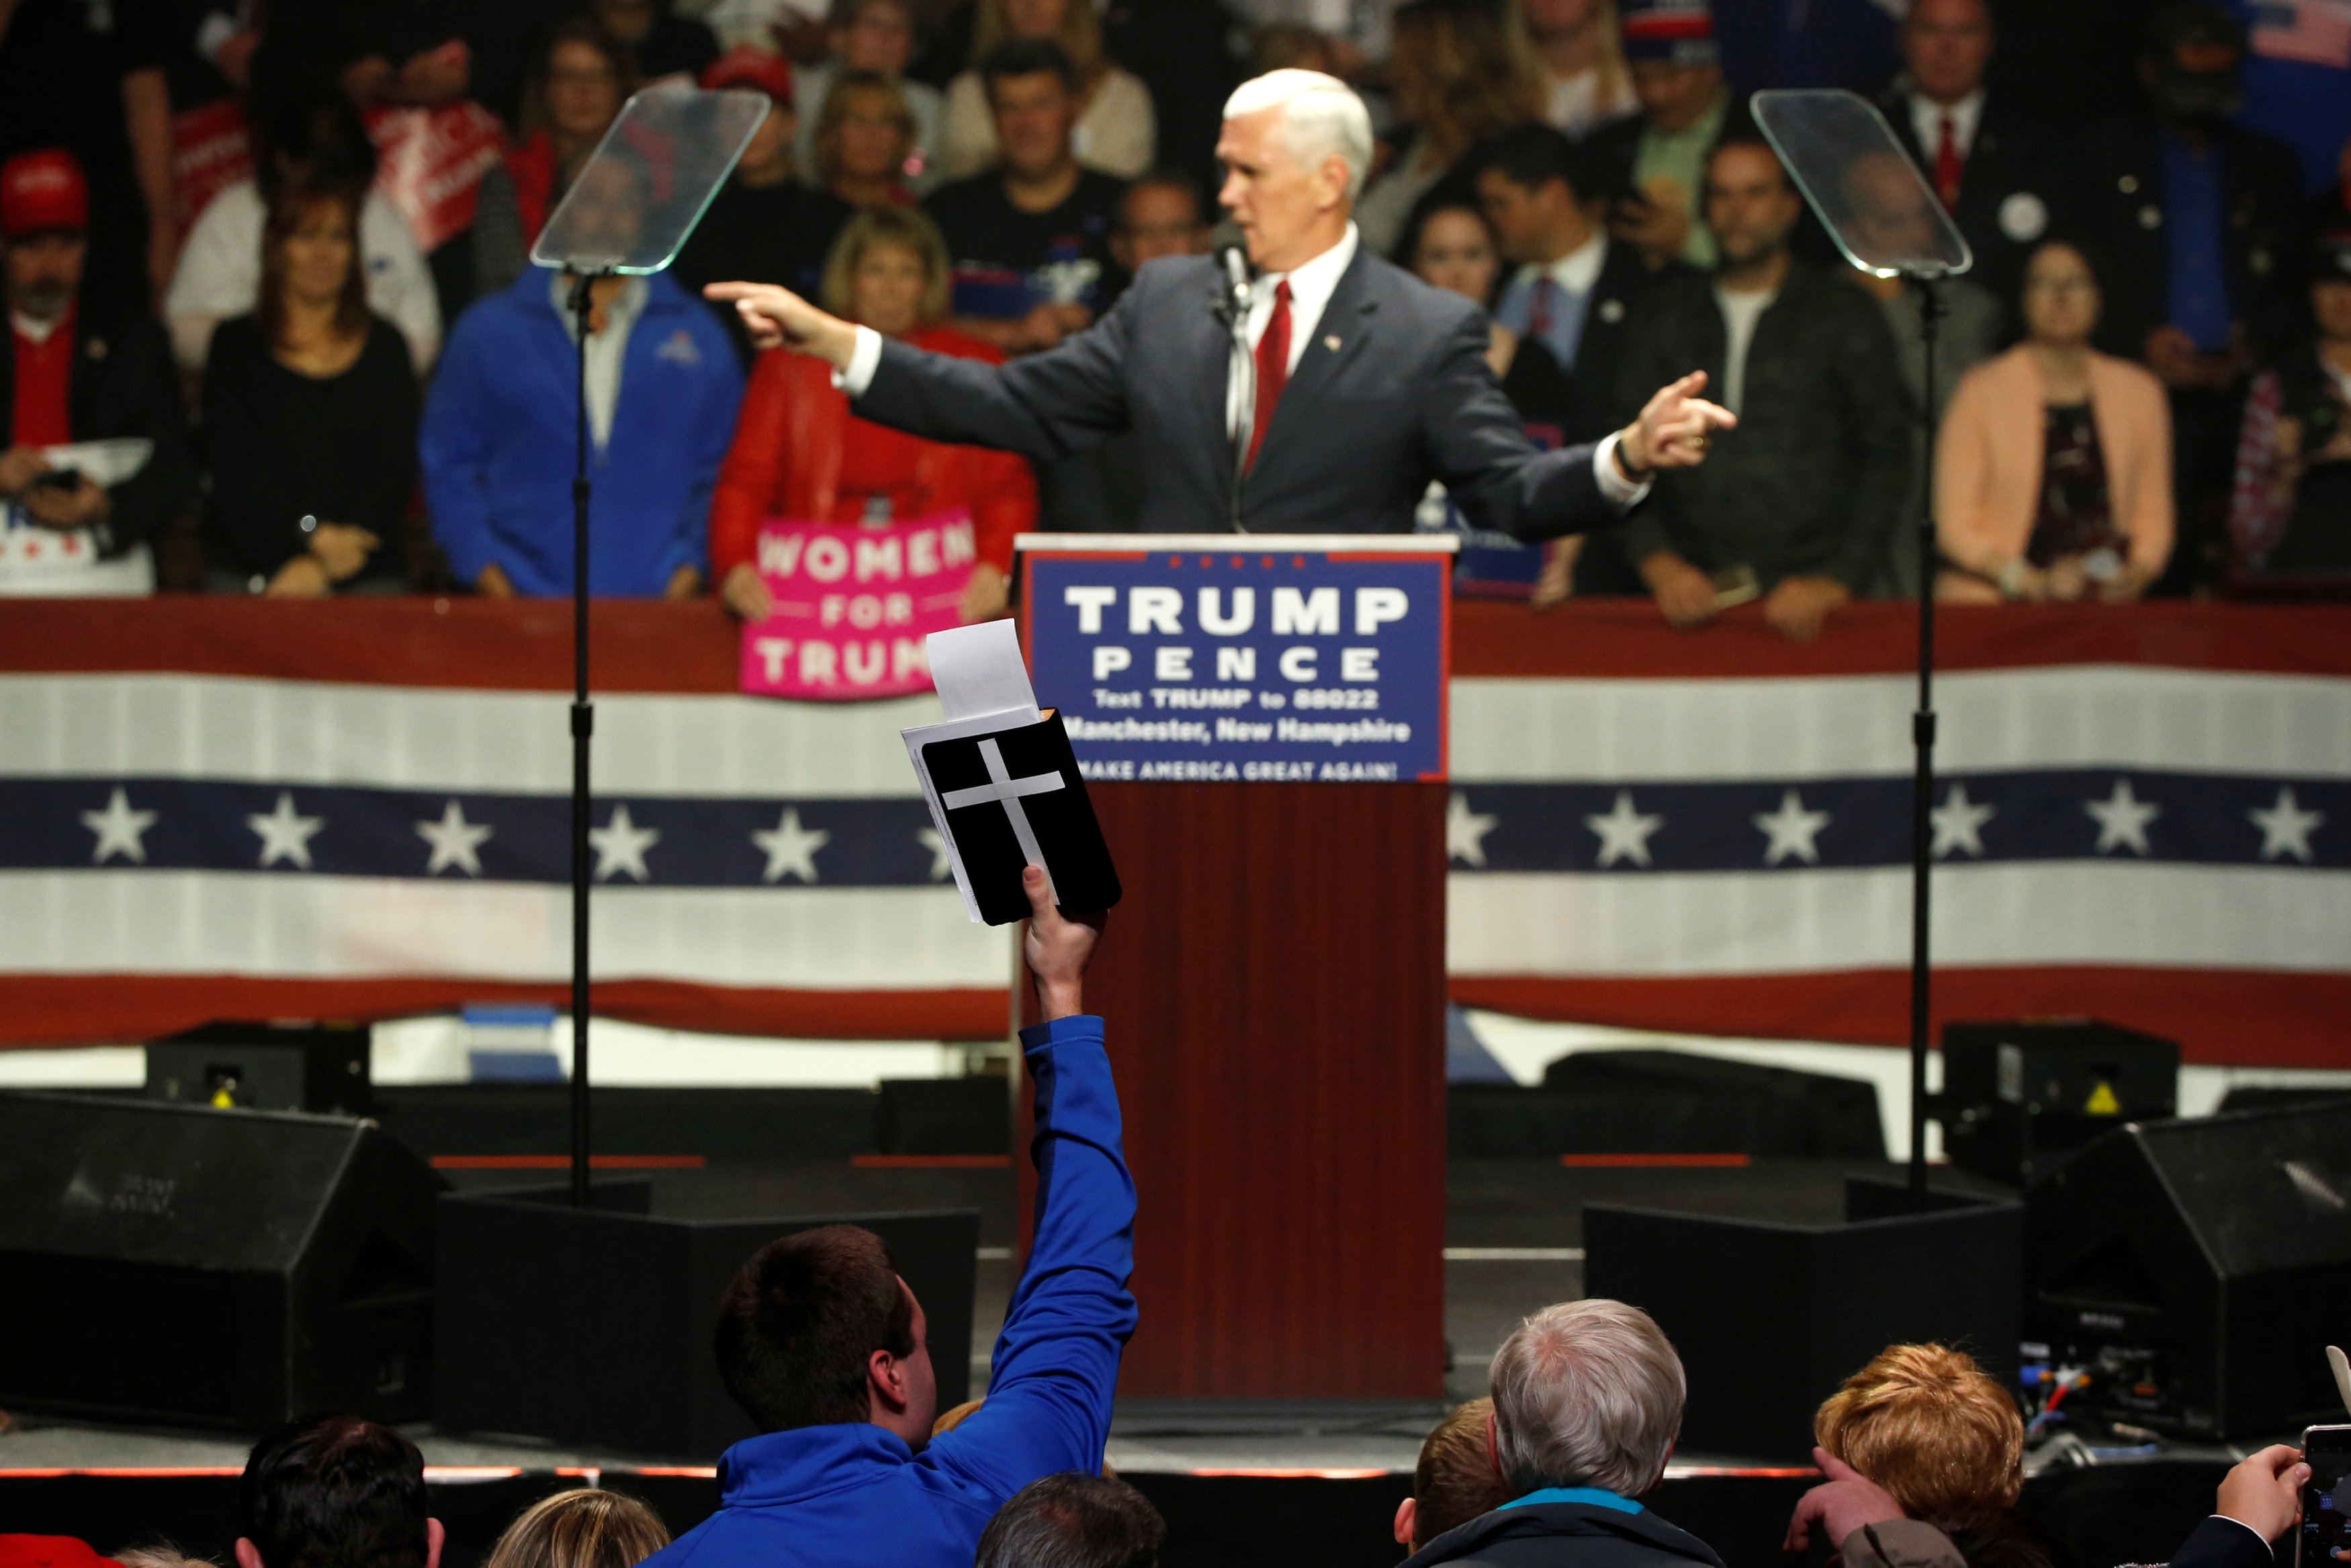 A supporter holds up a Bible as Republican U.S. vice presidential nominee Mike Pence speaks before presidential nominee Donald Trump arrives at an arena in Manchester, New Hampshire, U.